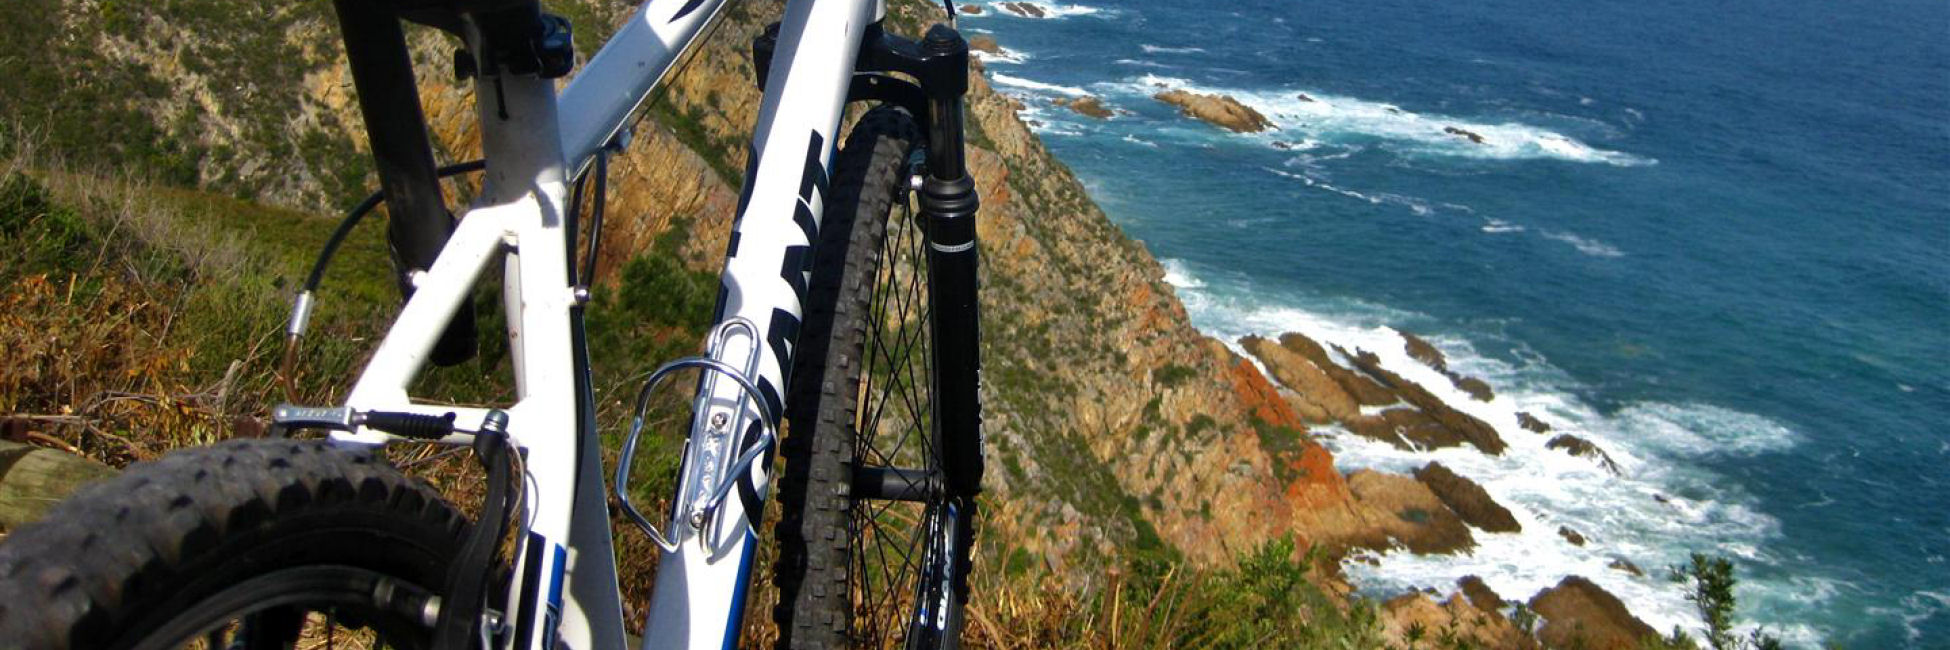 Knysna Mountain Biking Trails